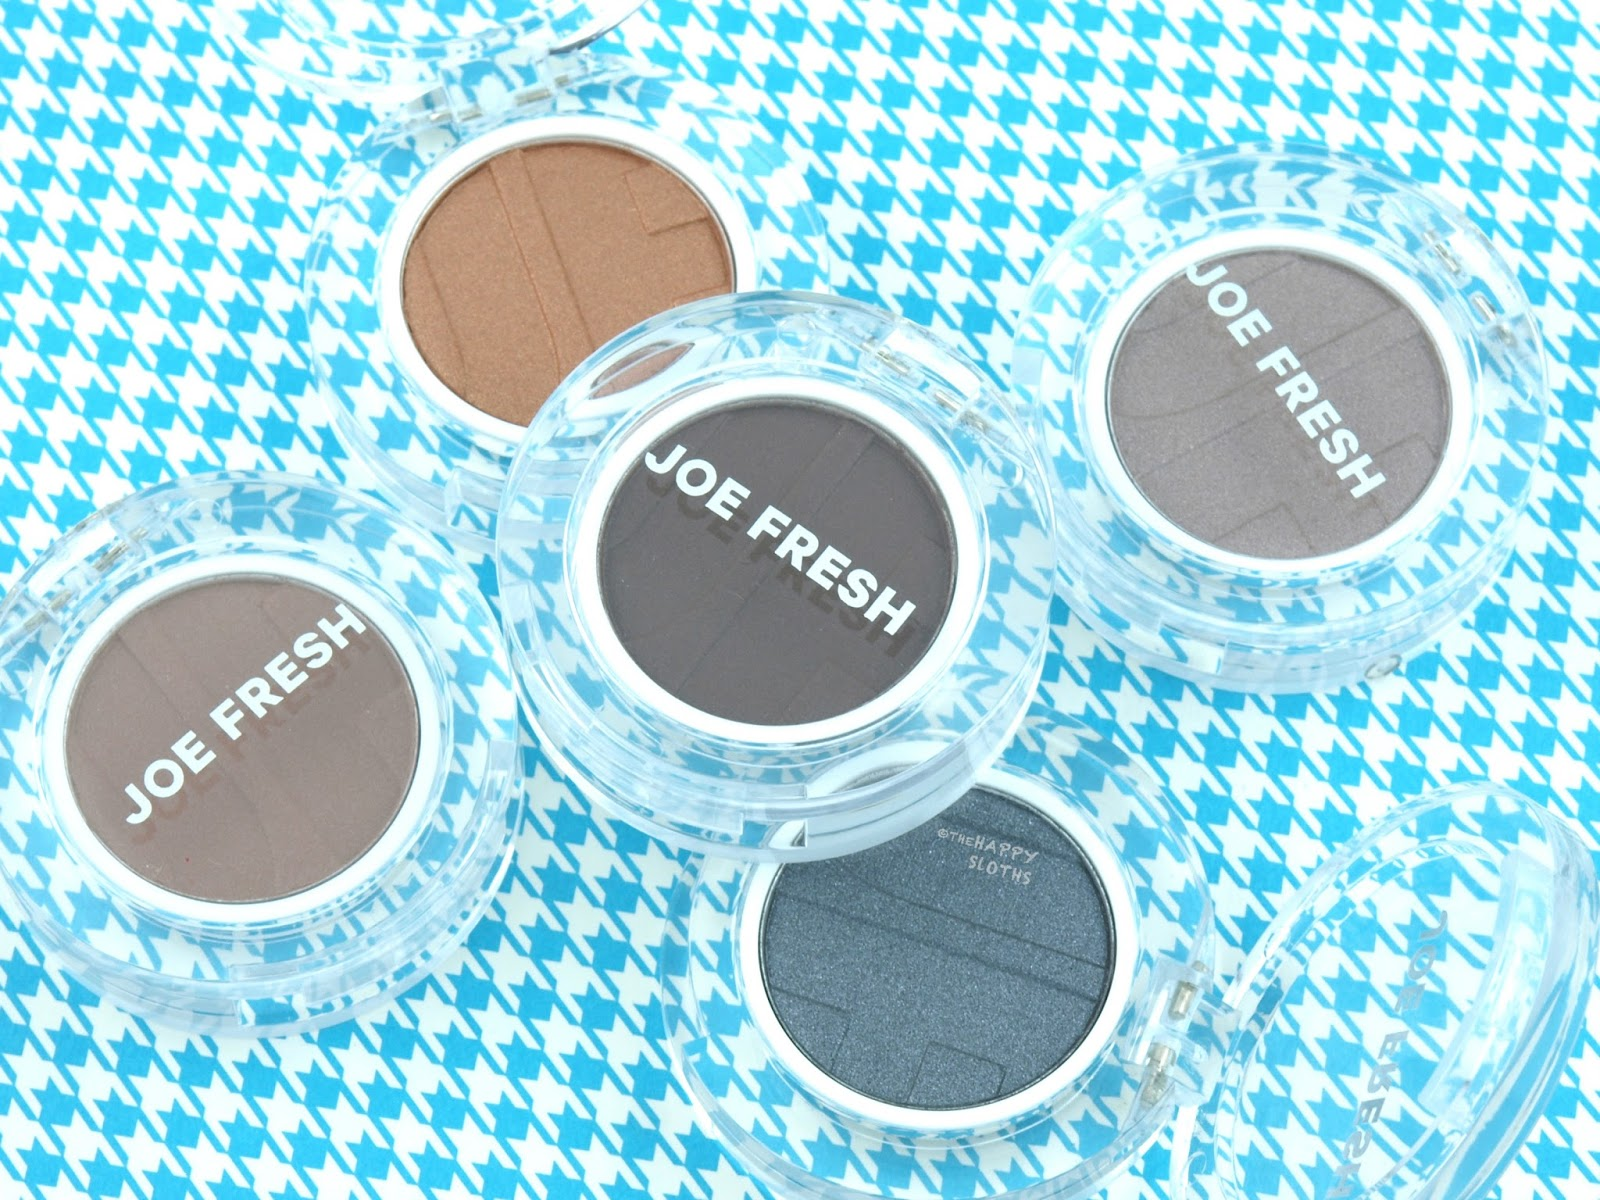 Joe Fresh Beauty Single Eyeshadows: Review and Swatches